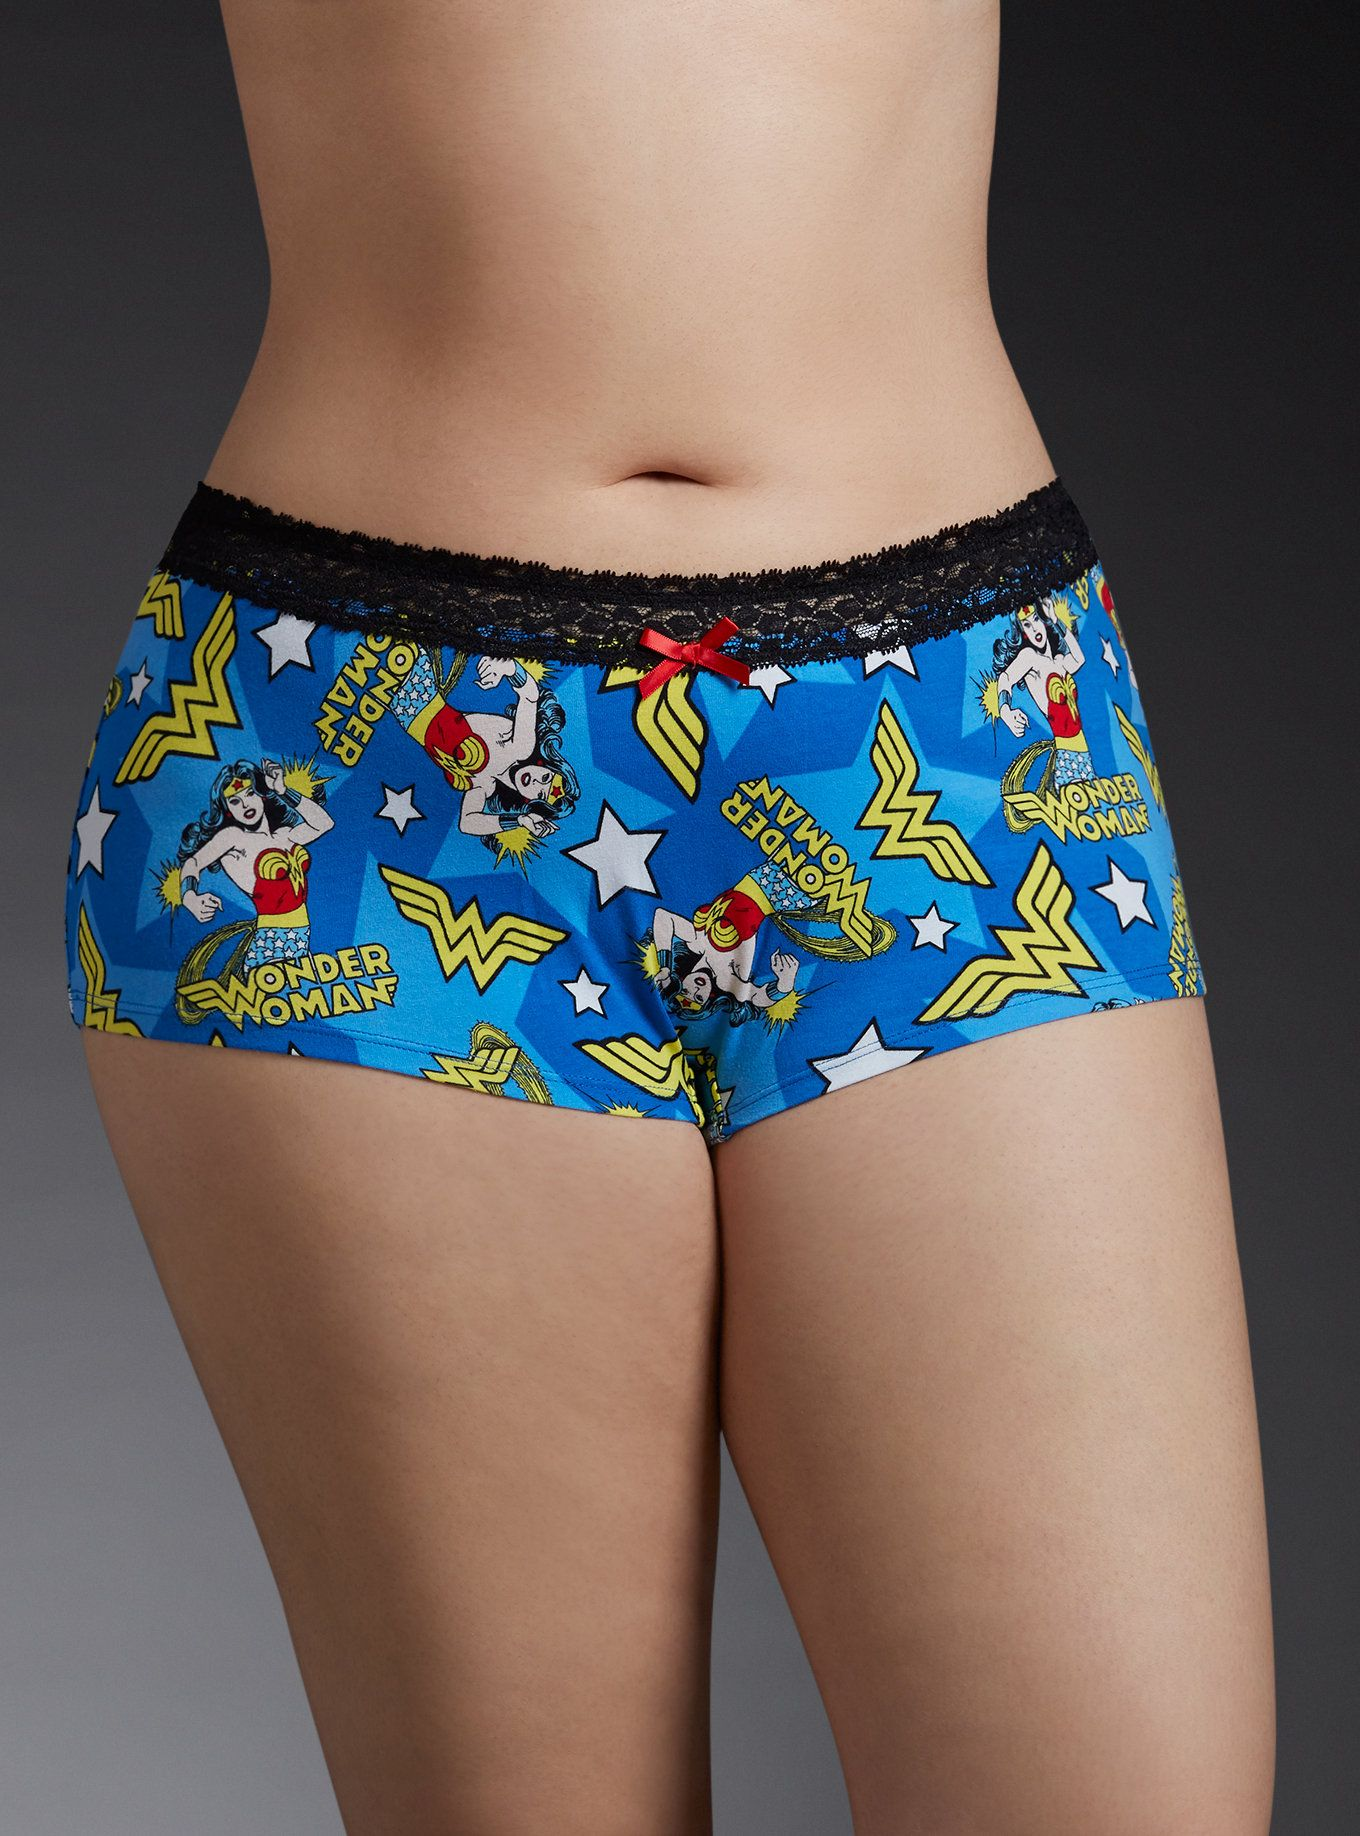 c9ddc1c7c777 Make a liar tell the truth with these panties. The comic book inspired  print fights